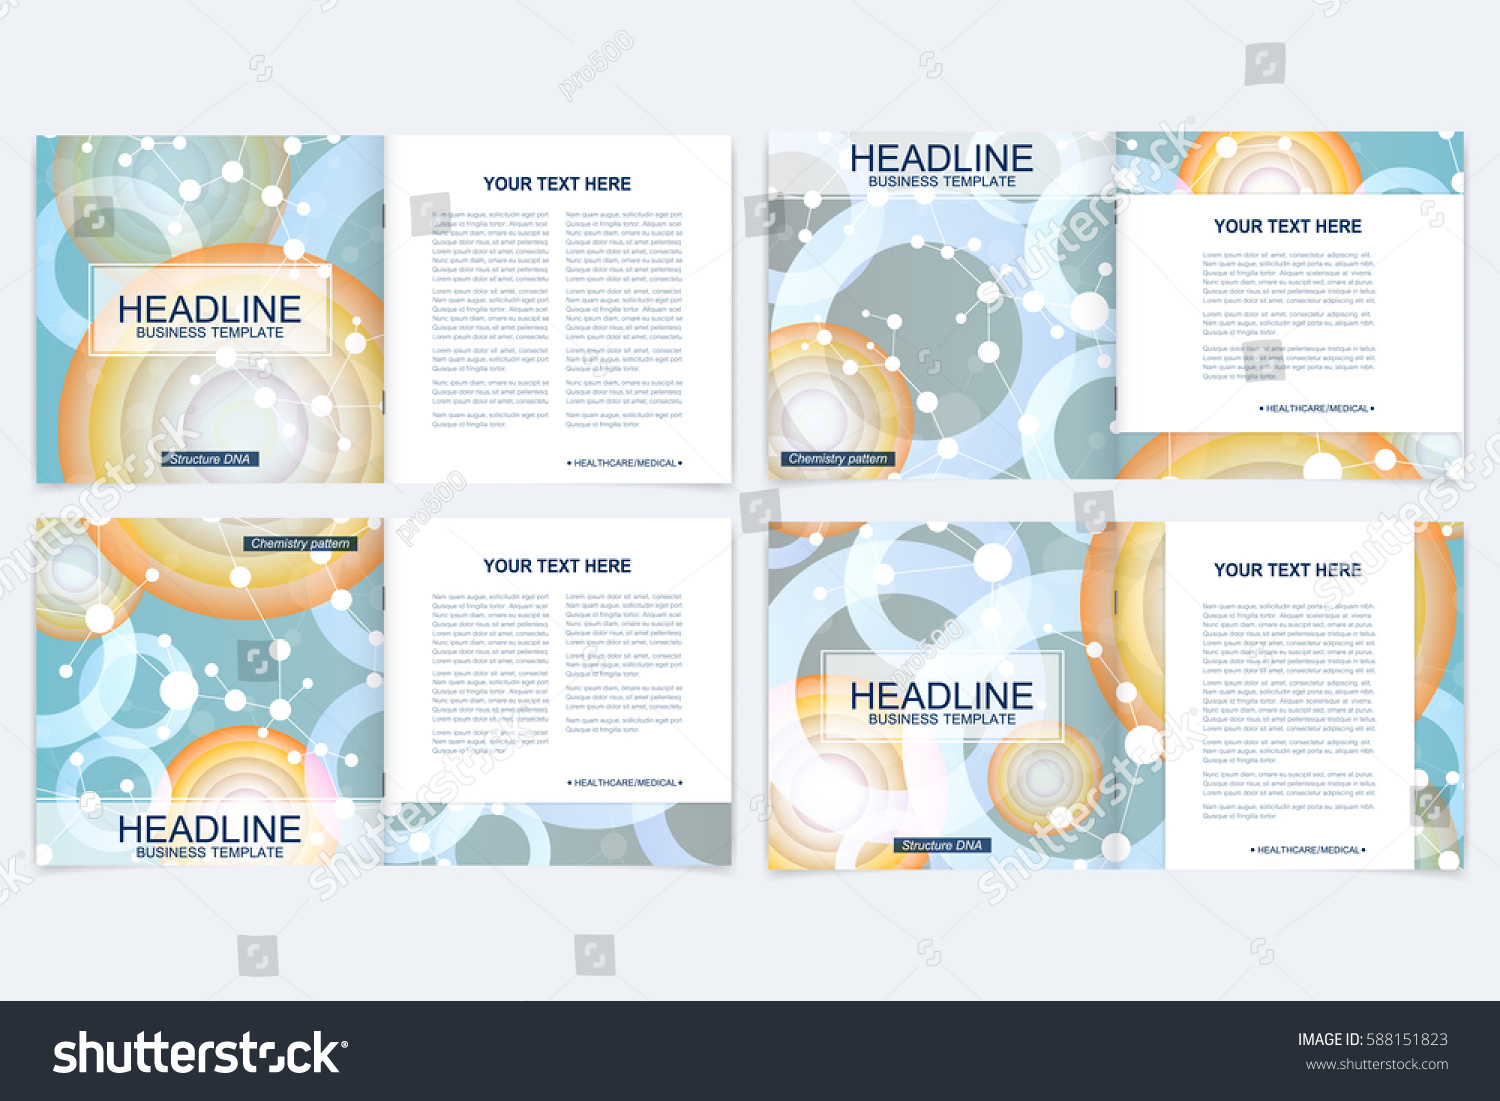 Templates Square Brochure Leaflet Cover Presentation Stock Vector ...